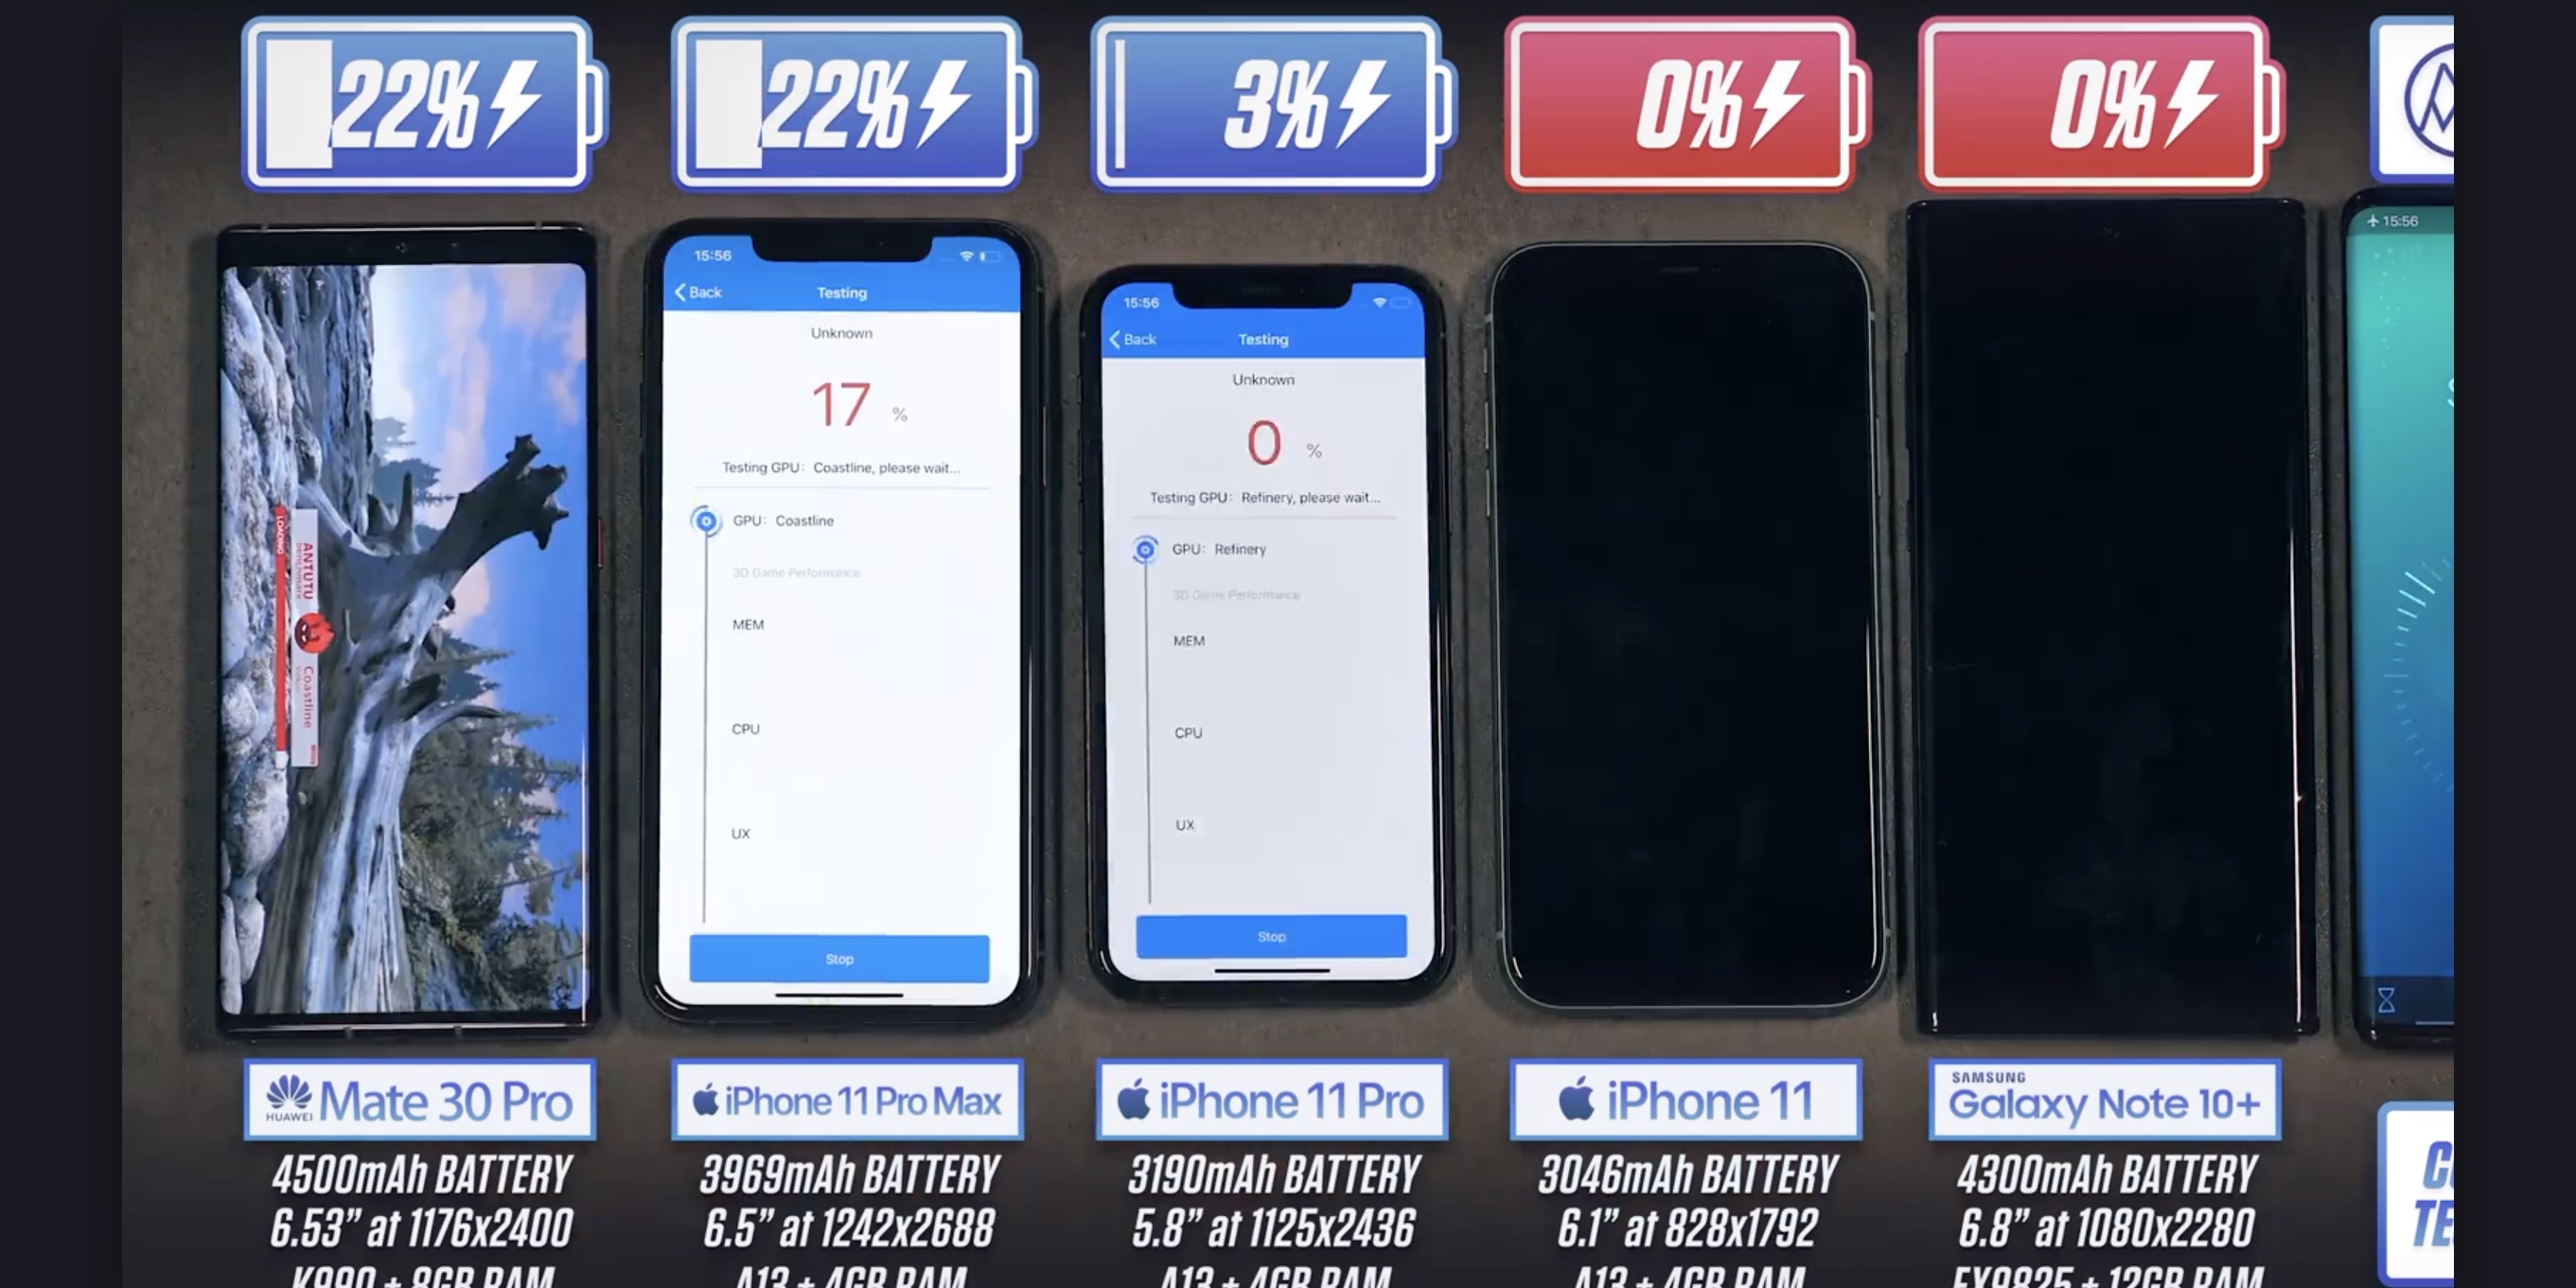 Best Battery Life Iphone 11 Pro Max Beats Leading Android Phones